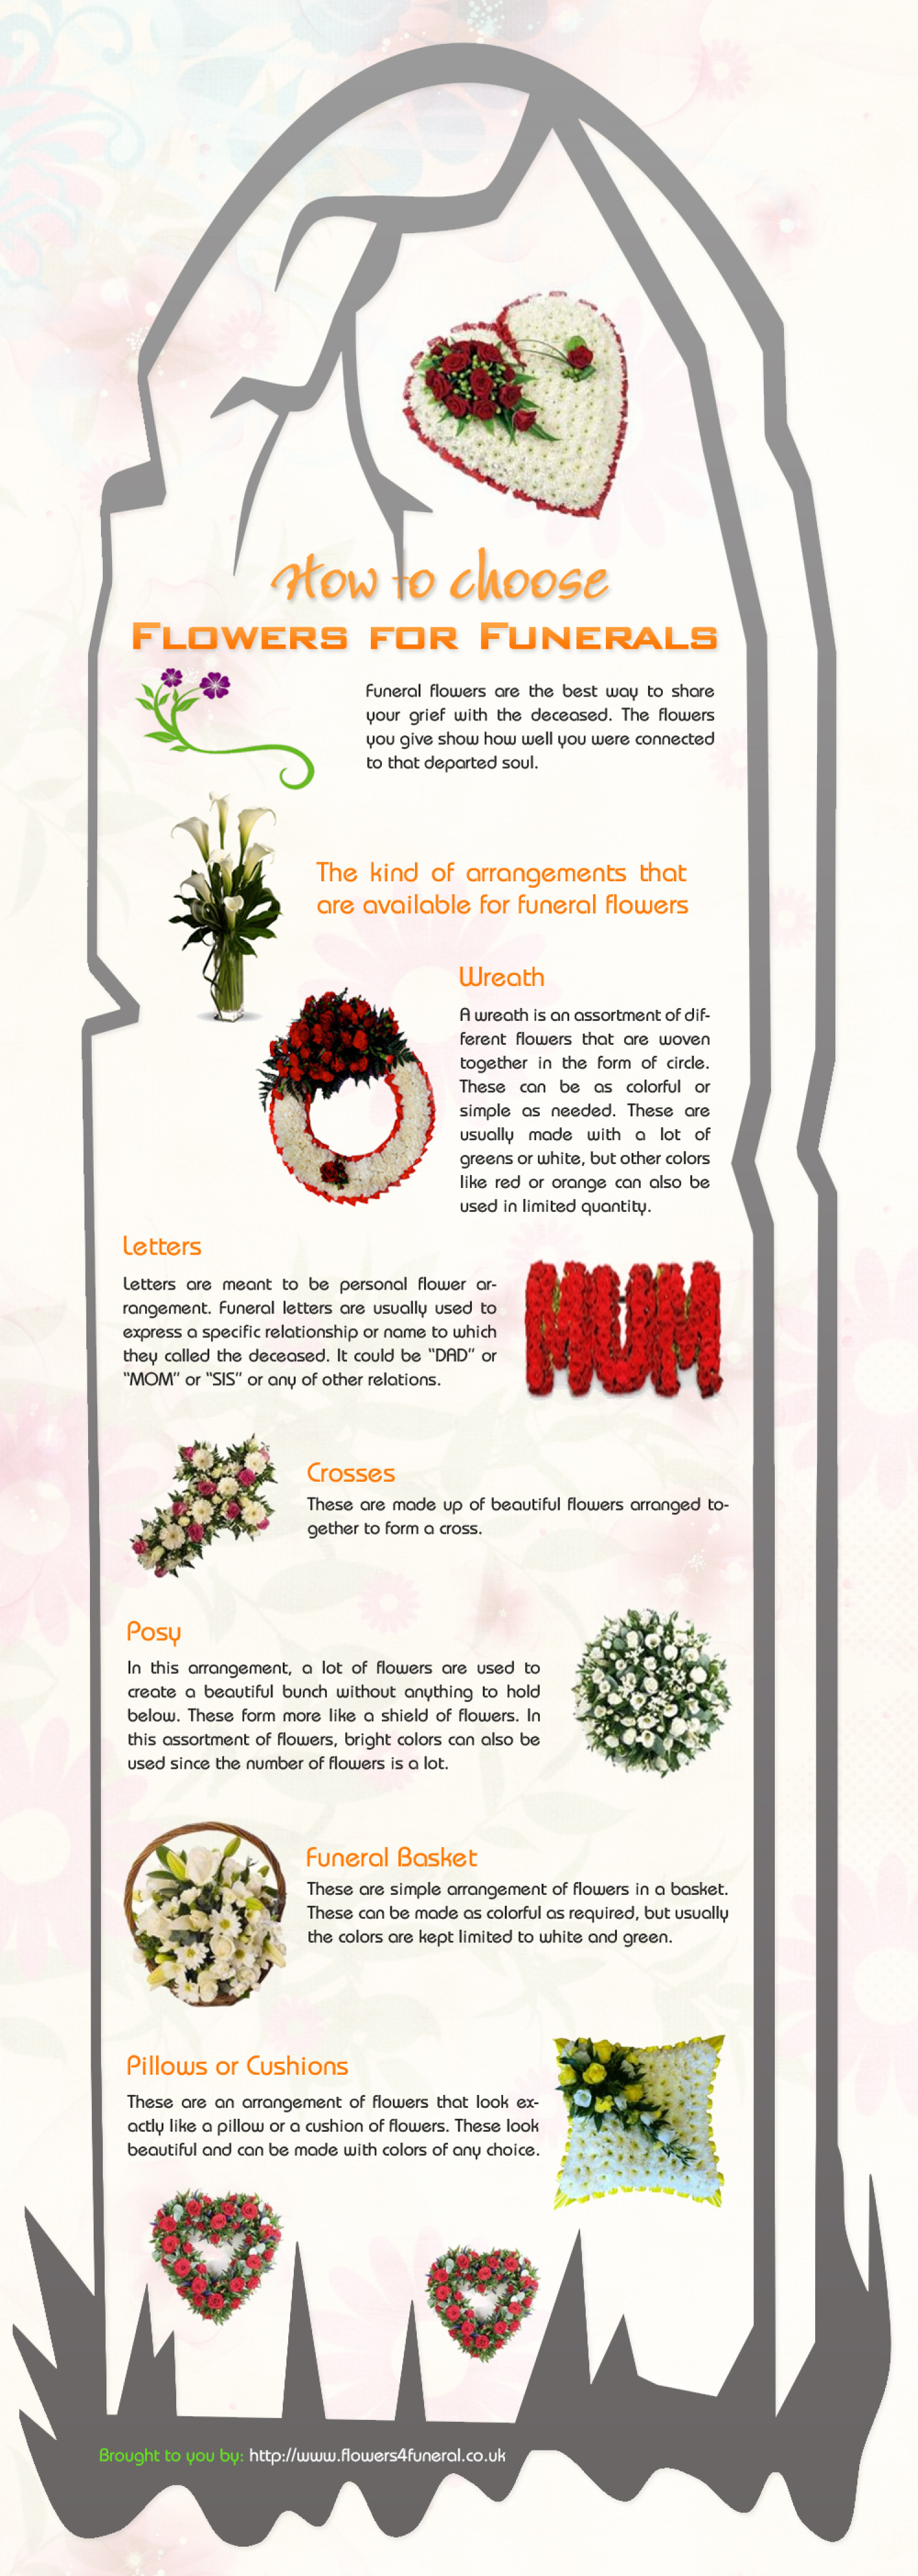 How to choose Flowers for Funerals Infographic